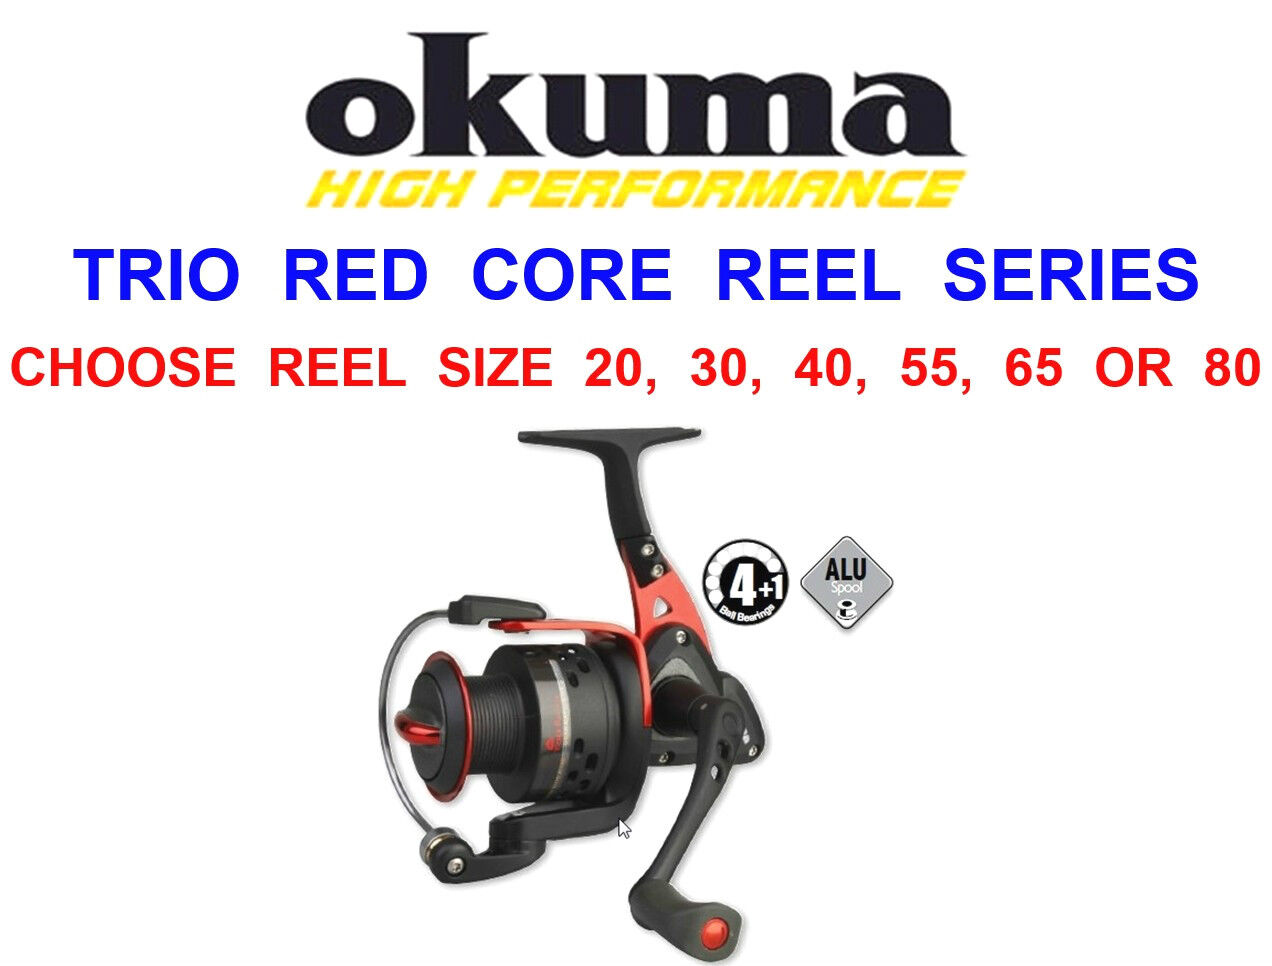 OKUMA TRIO RED CORE 80 REEL FOR SEA PIKE PREDATOR LURE SPINNING BASS ROD FISHING